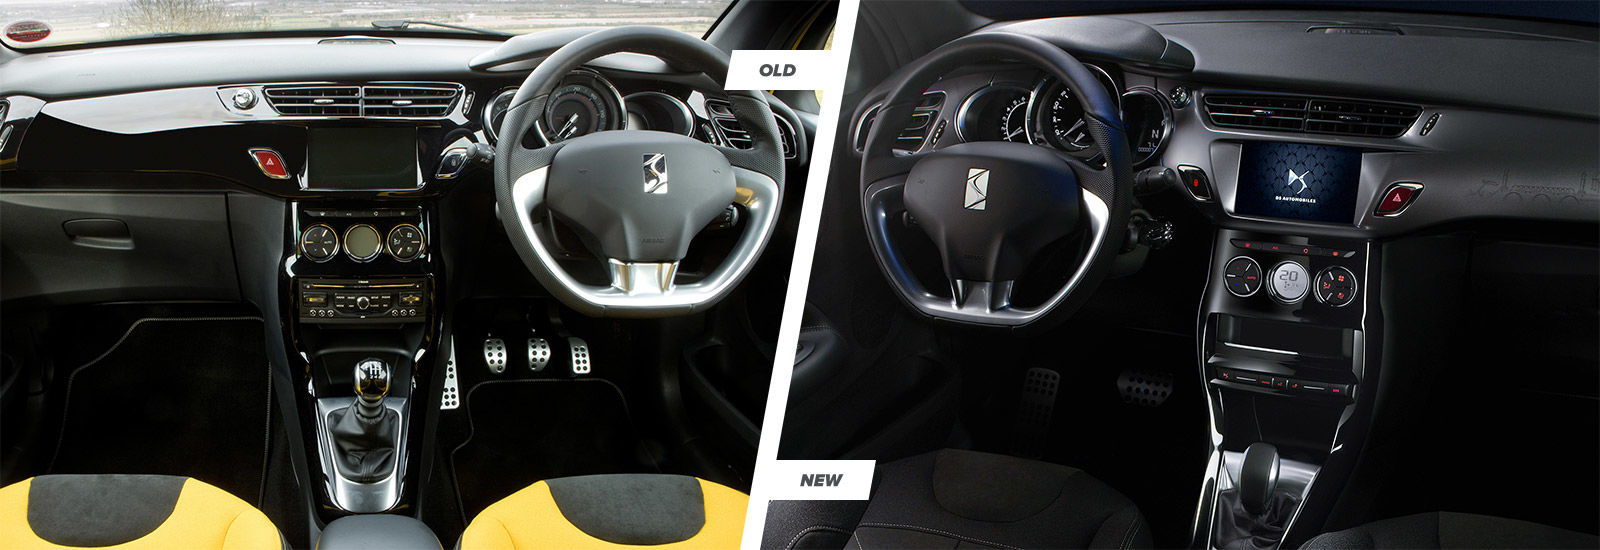 DS 3 I Restyling 2016 - now Cabriolet #6